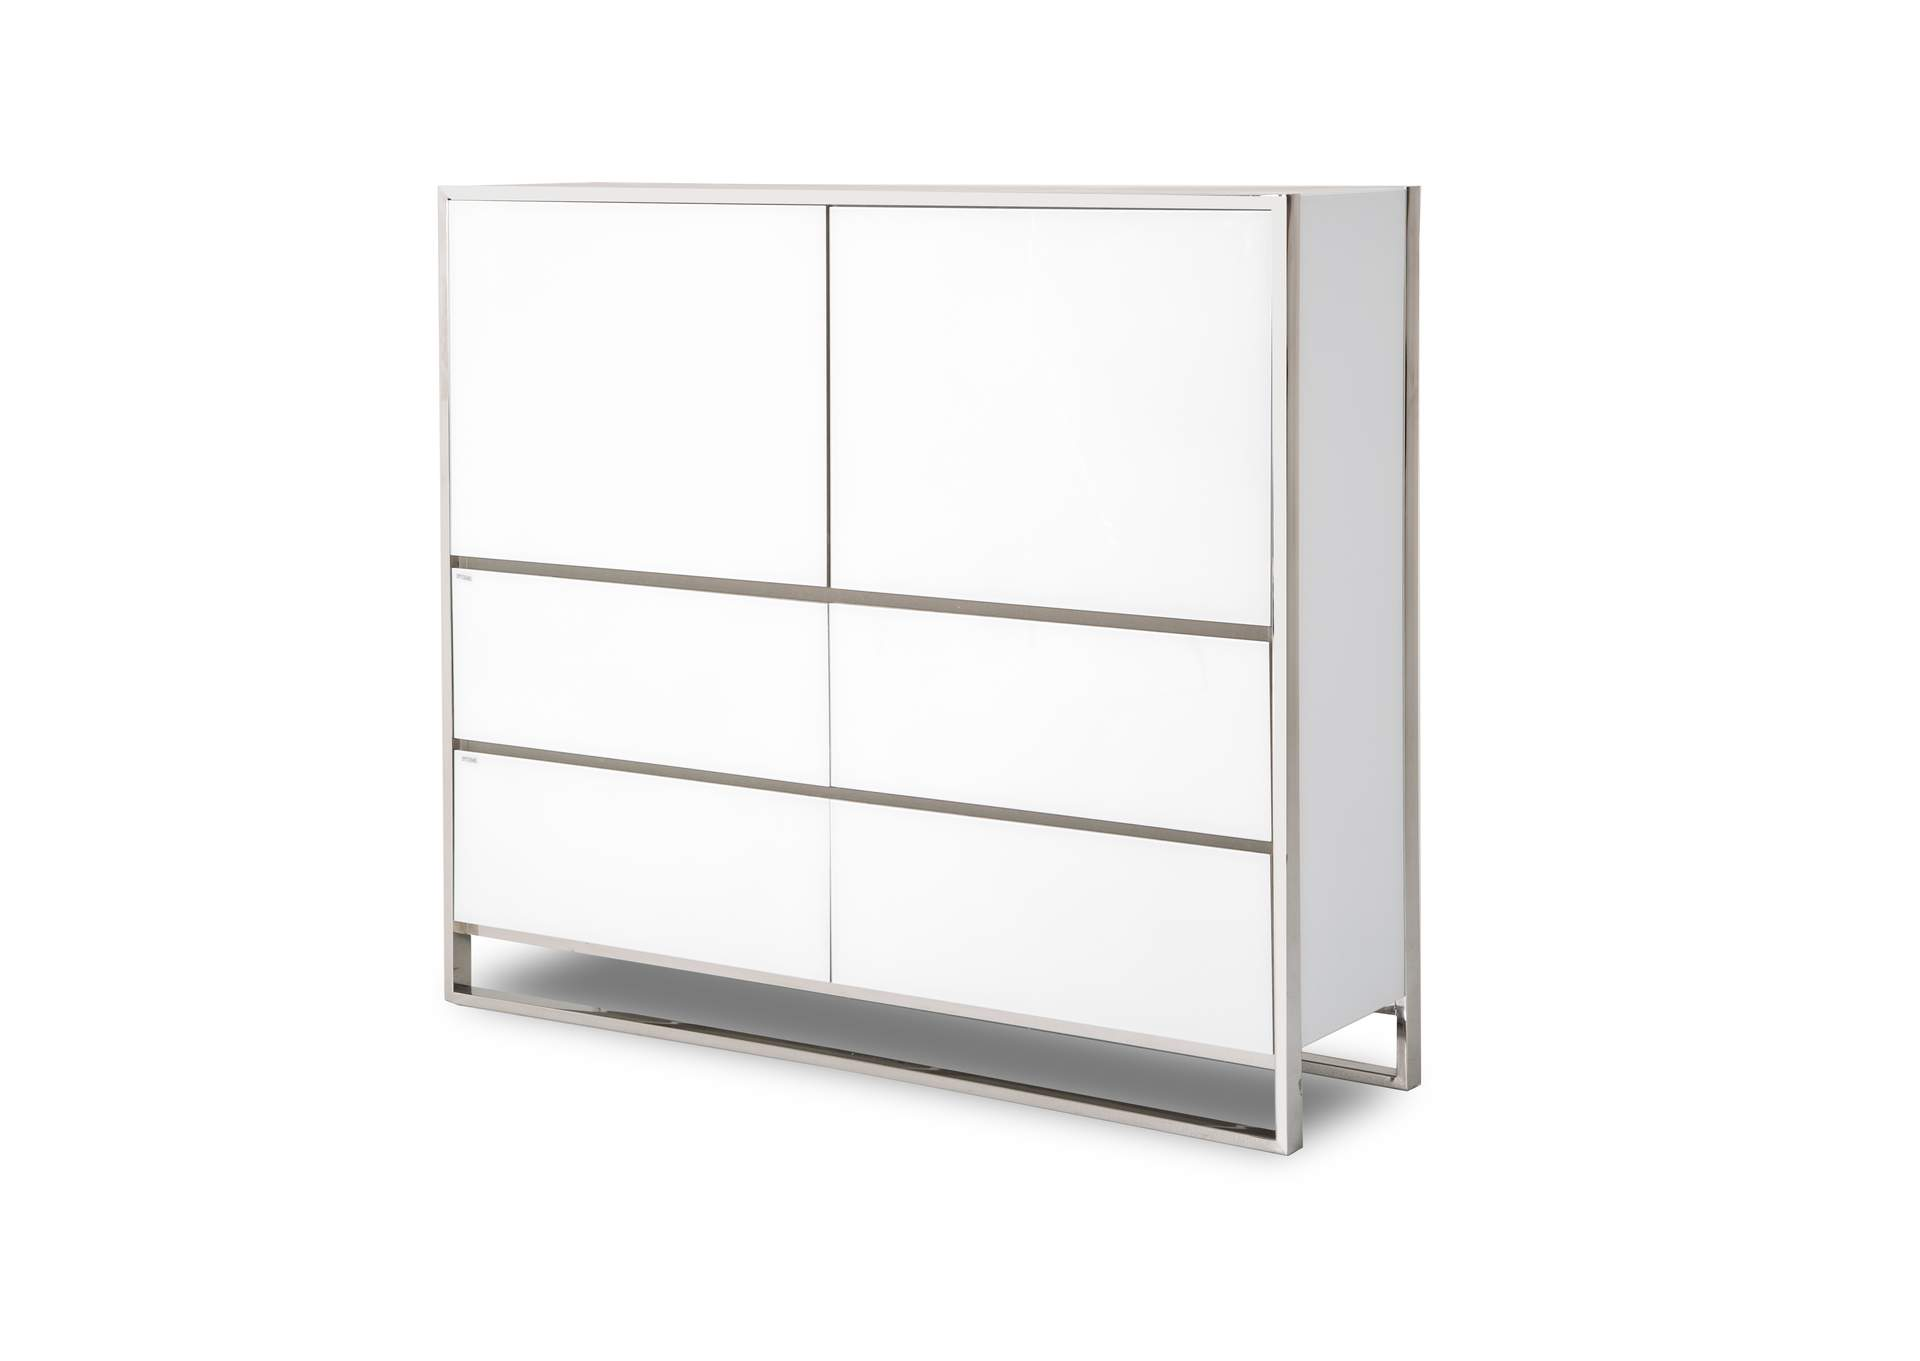 State St. Glossy White Metal Storage Cabinet,AICO